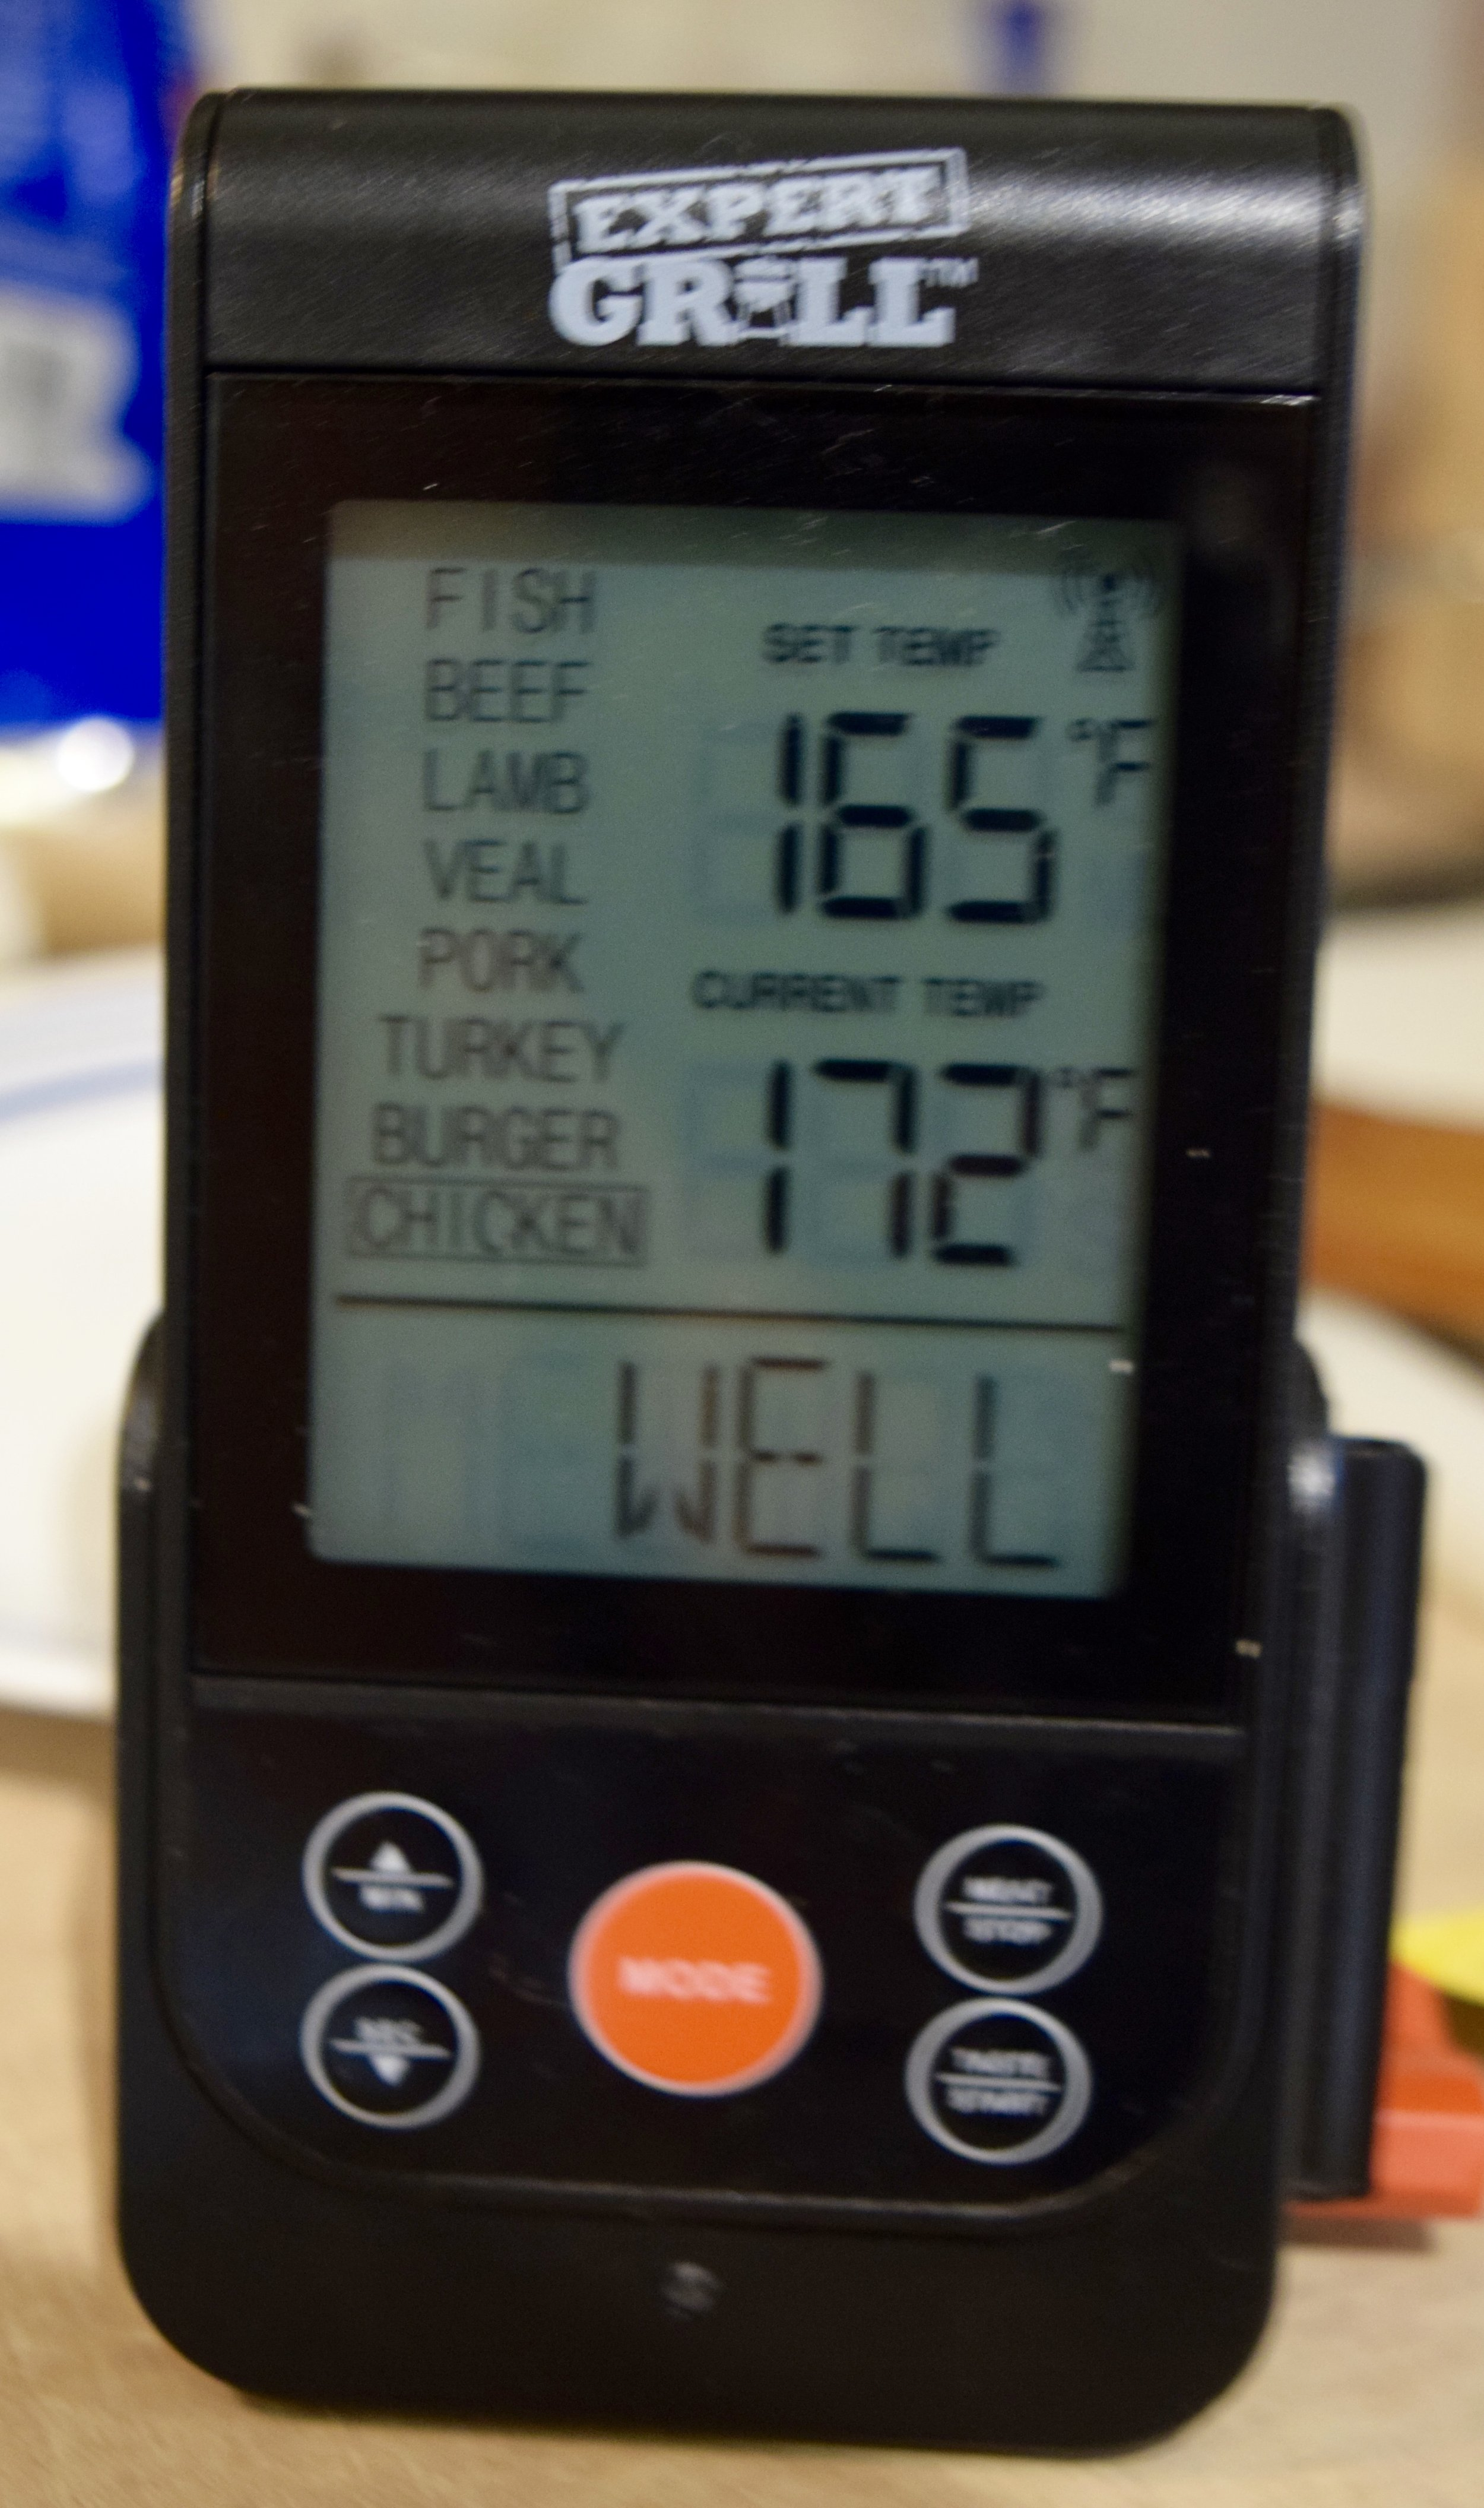 meat_thermometer_165_chicken.jpg